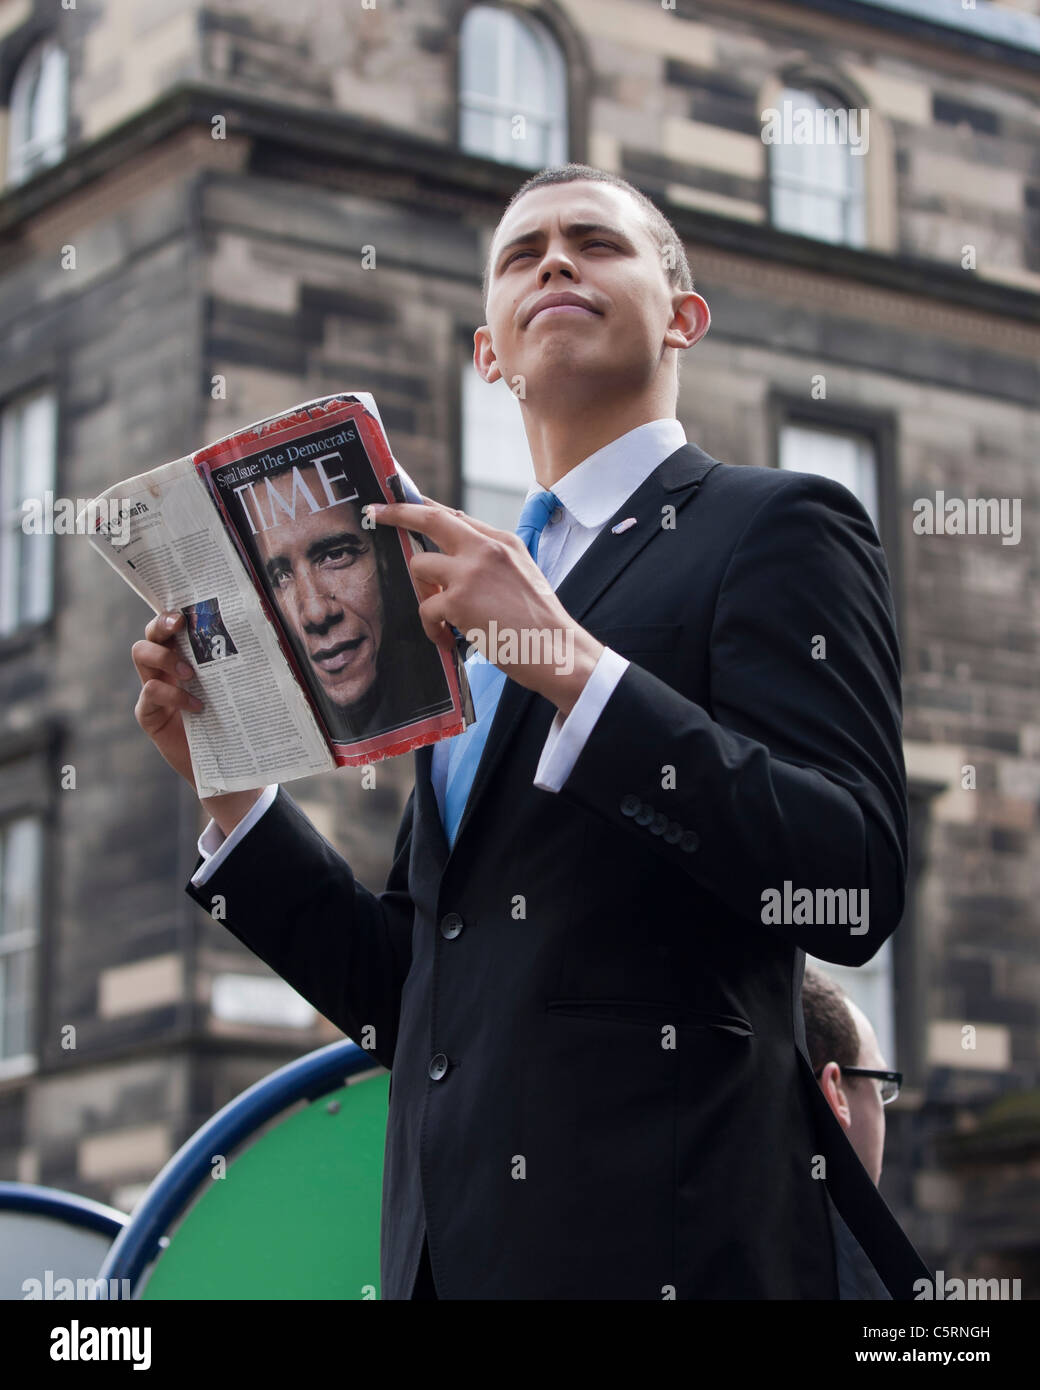 A Barack Obama Look A Like Poses Reading A Copy Of Time Magazine On Stock Photo